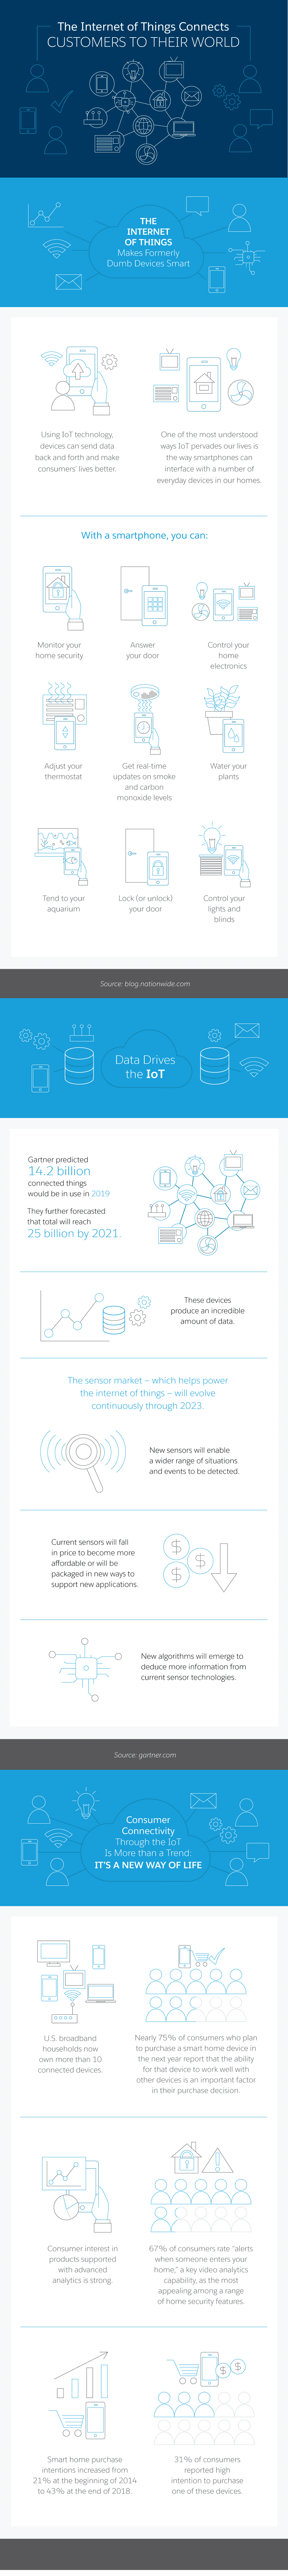 the-internet-of-things-connects-customers-to-their-world